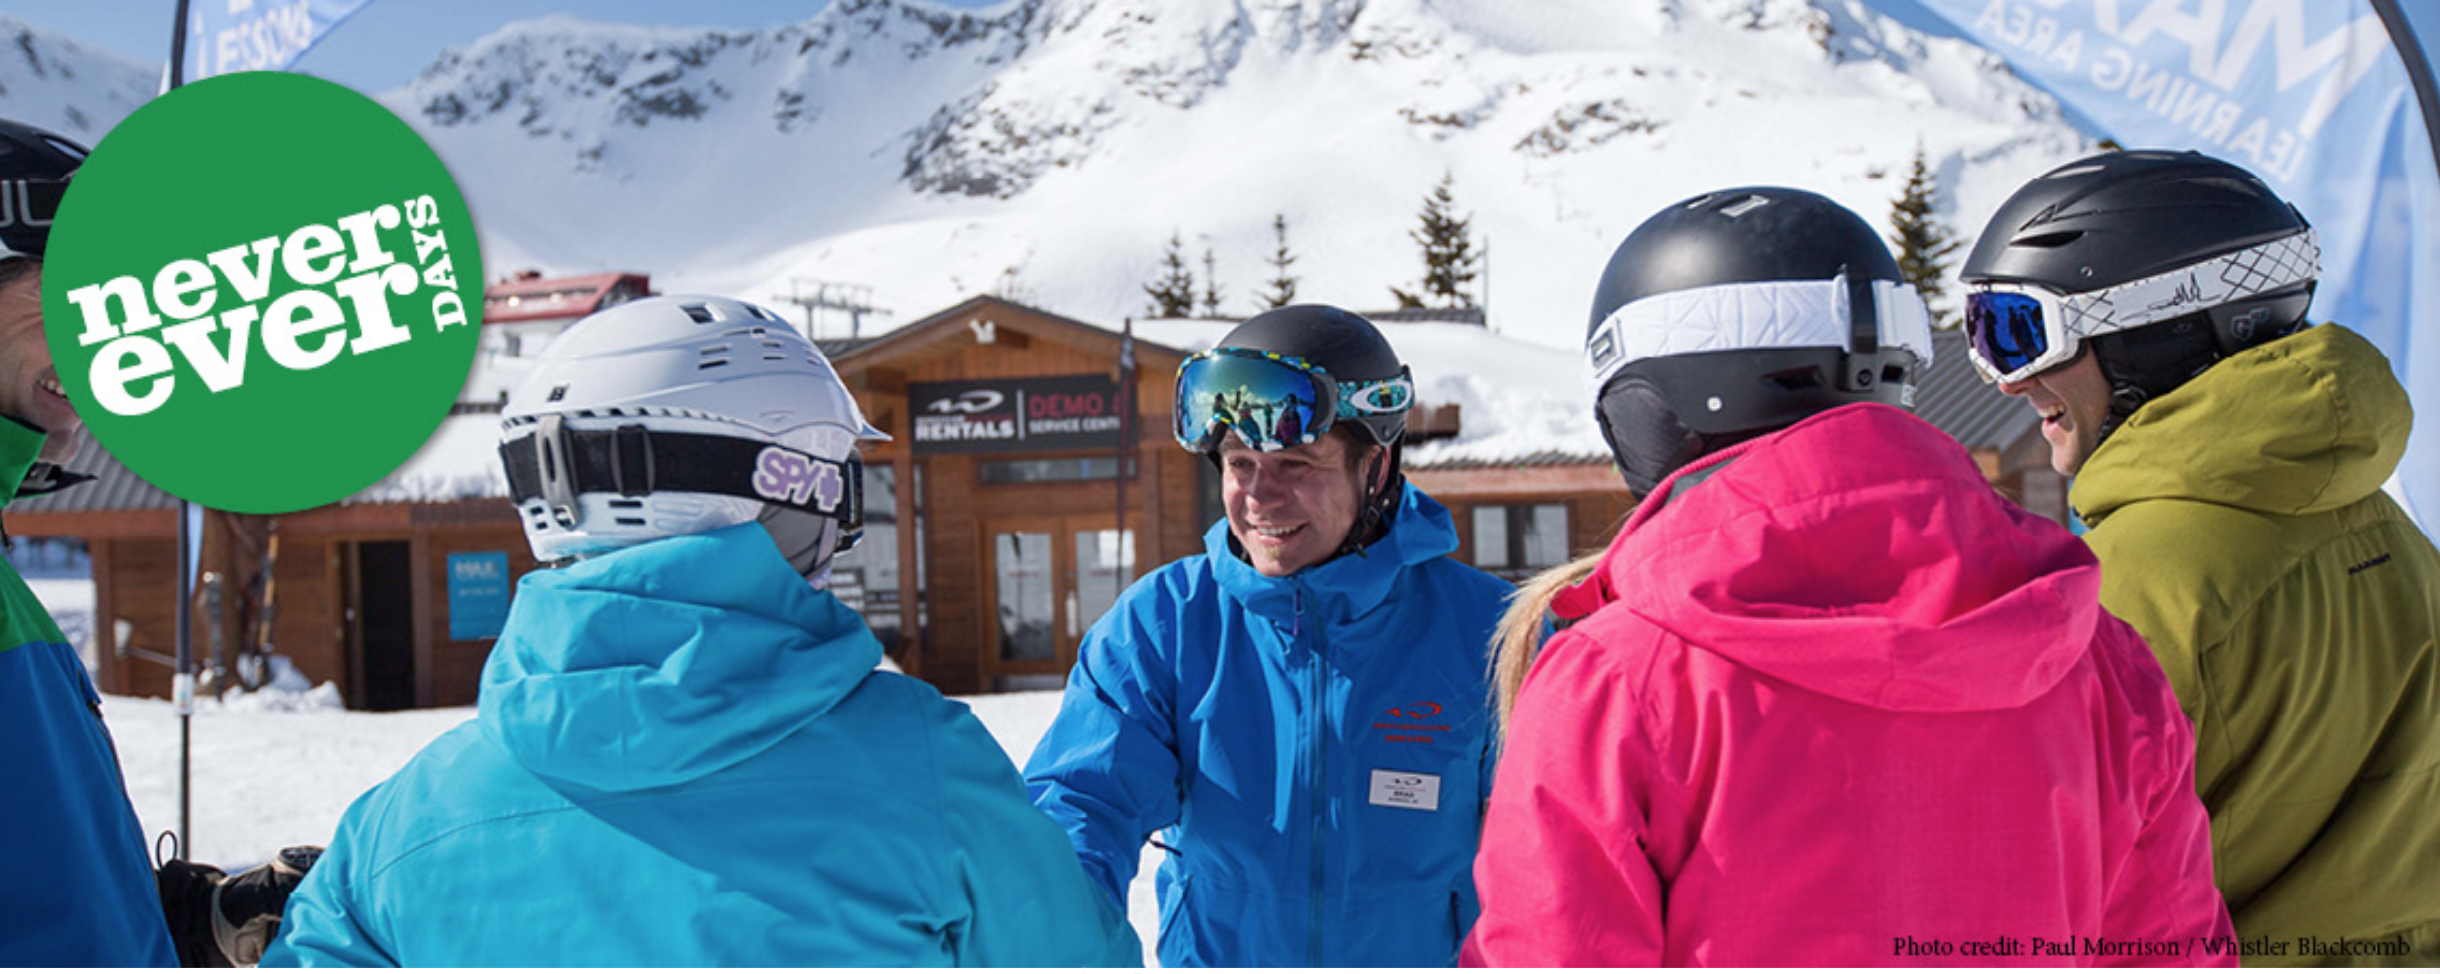 Learn to Ski - Never Ever Days Dec. 10-11 at Whistler Blackcomb